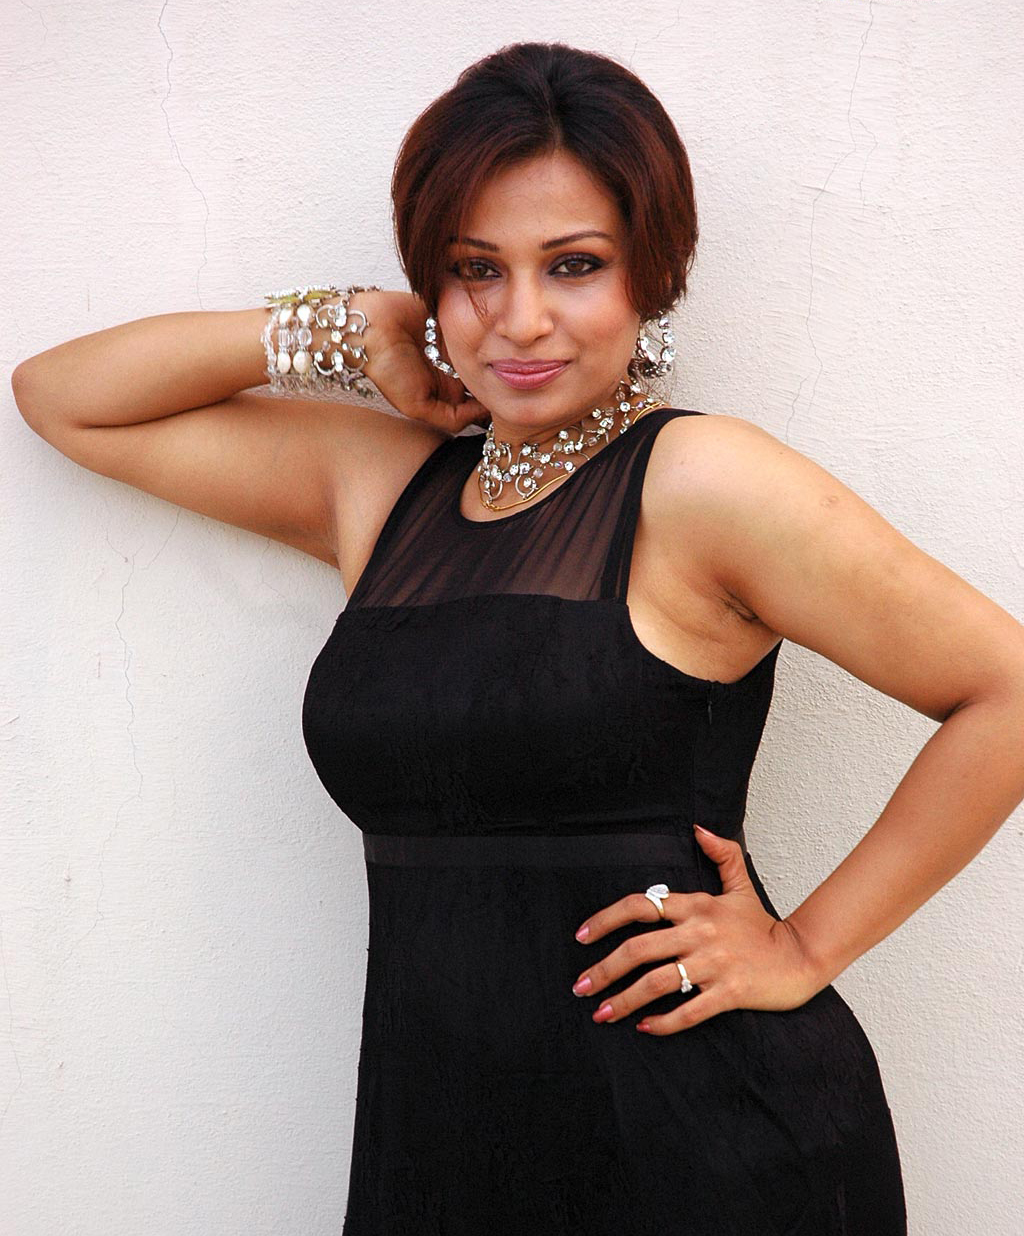 Pictures From Indian Movies And Actress: Asha Saini Sexy